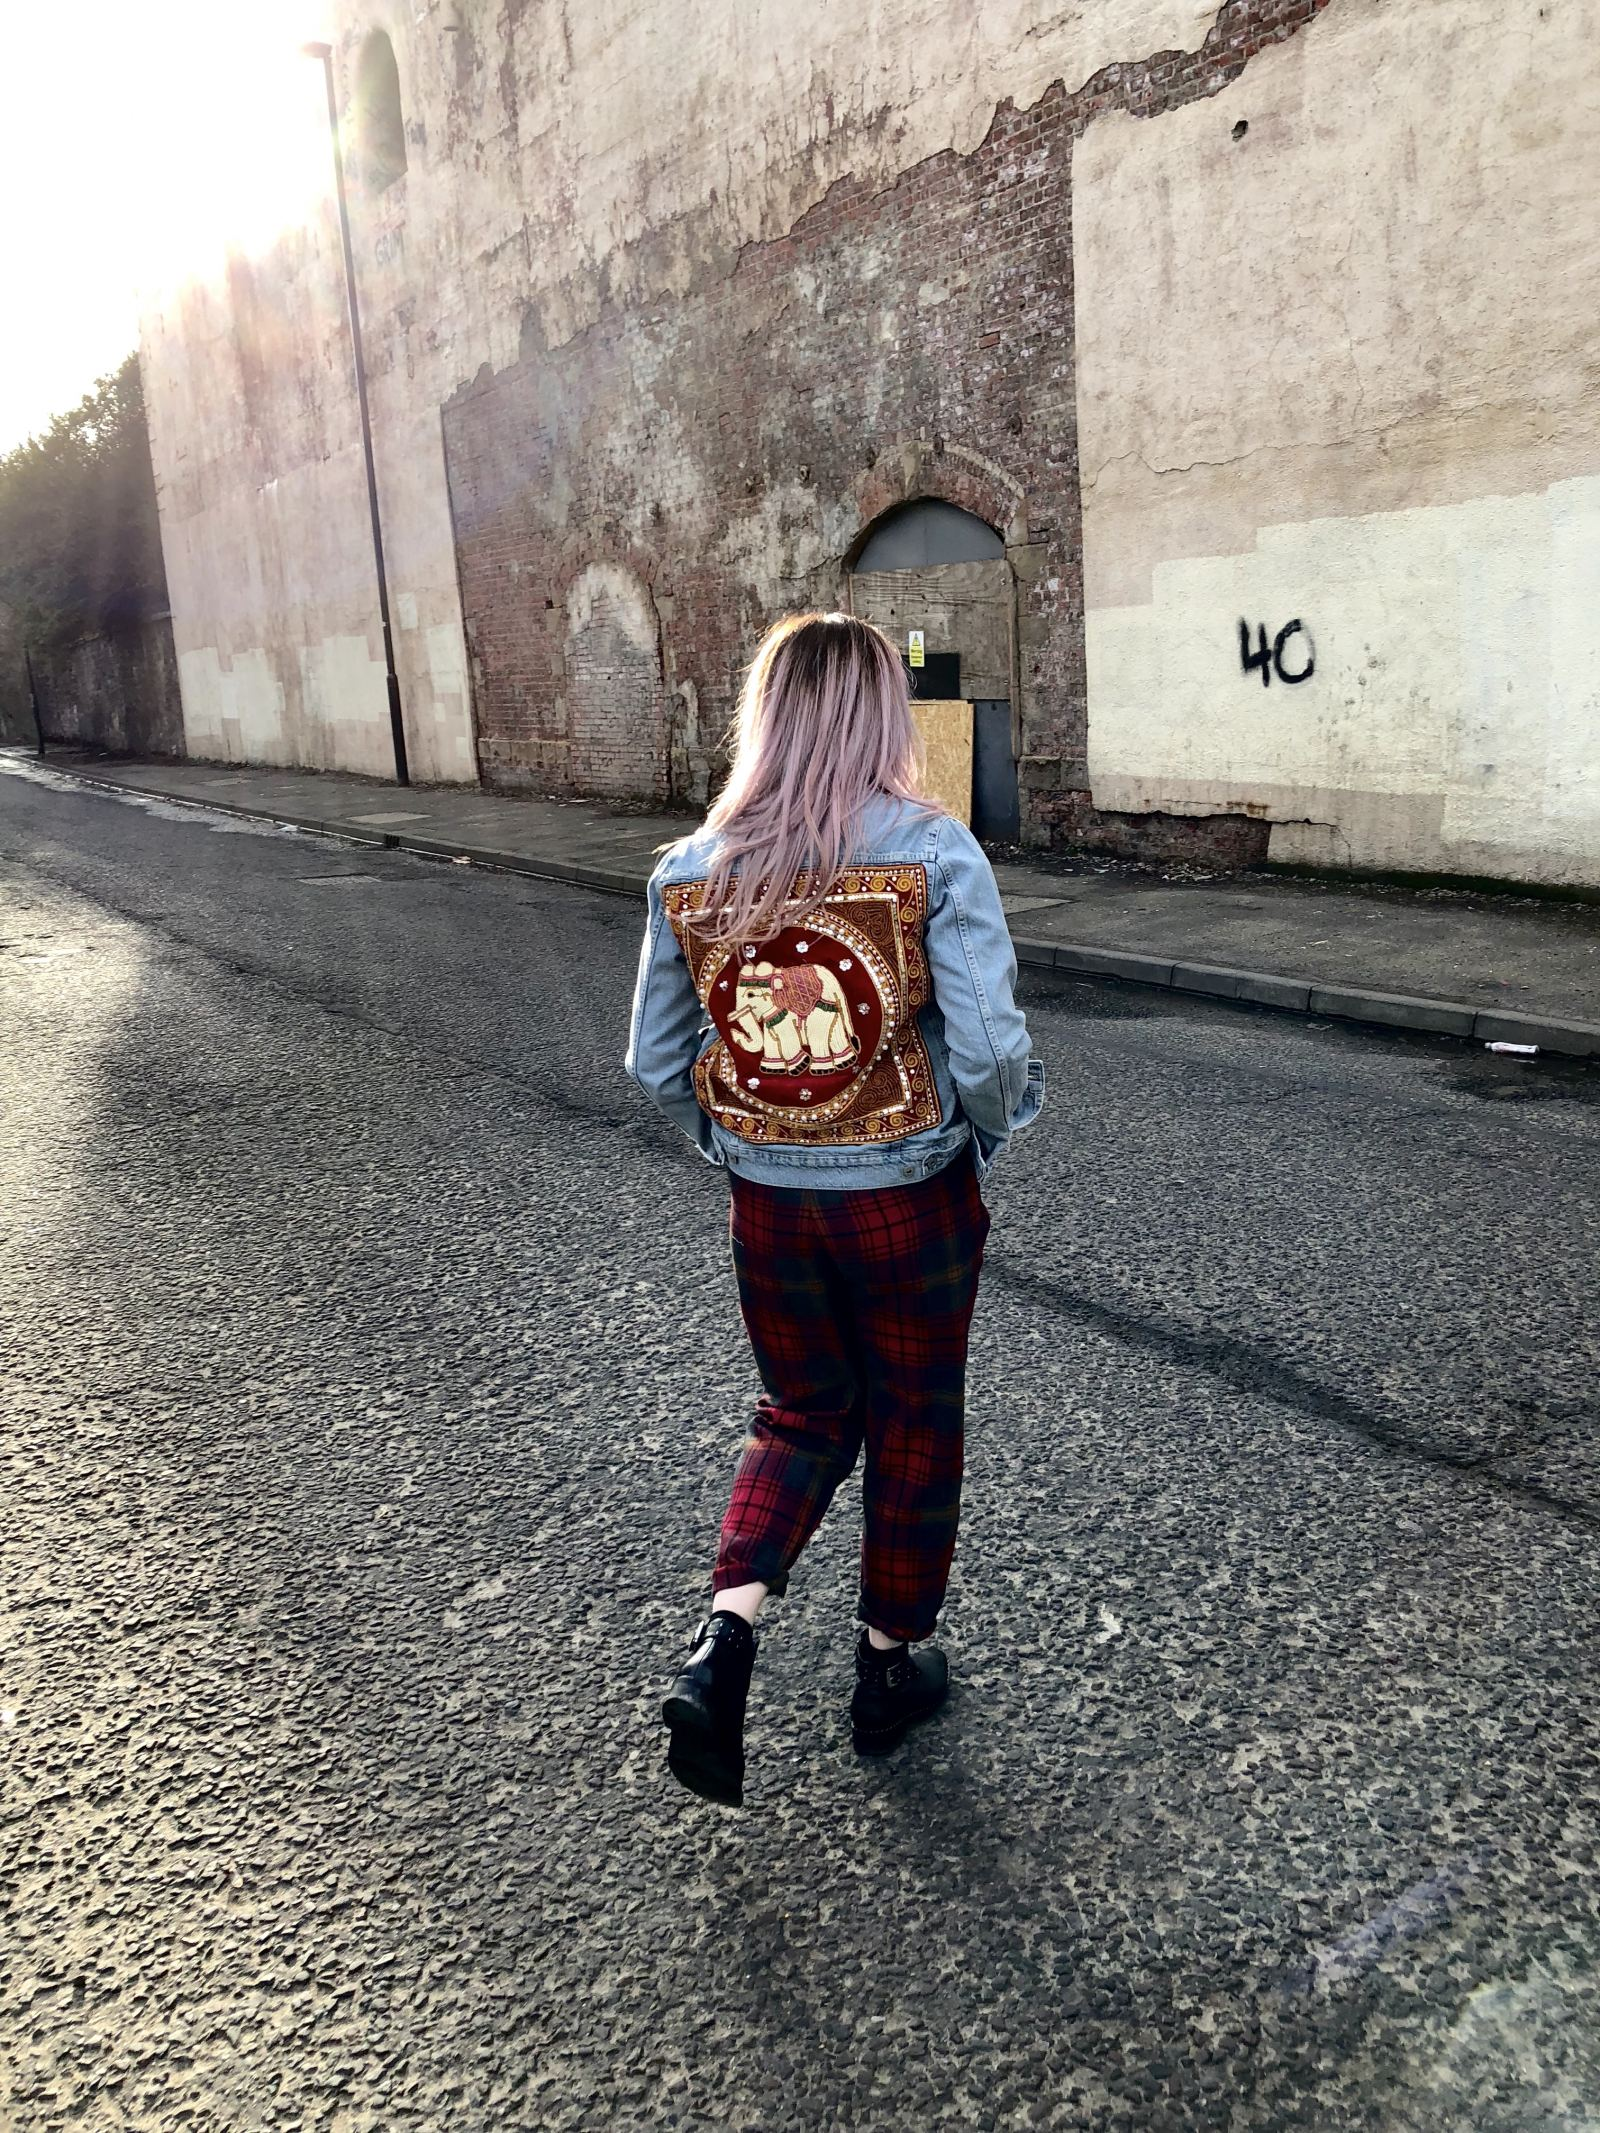 fashion blogger Pixie Tenenbaum wears a denim jacket by Flaura Rose with red elephant design on back